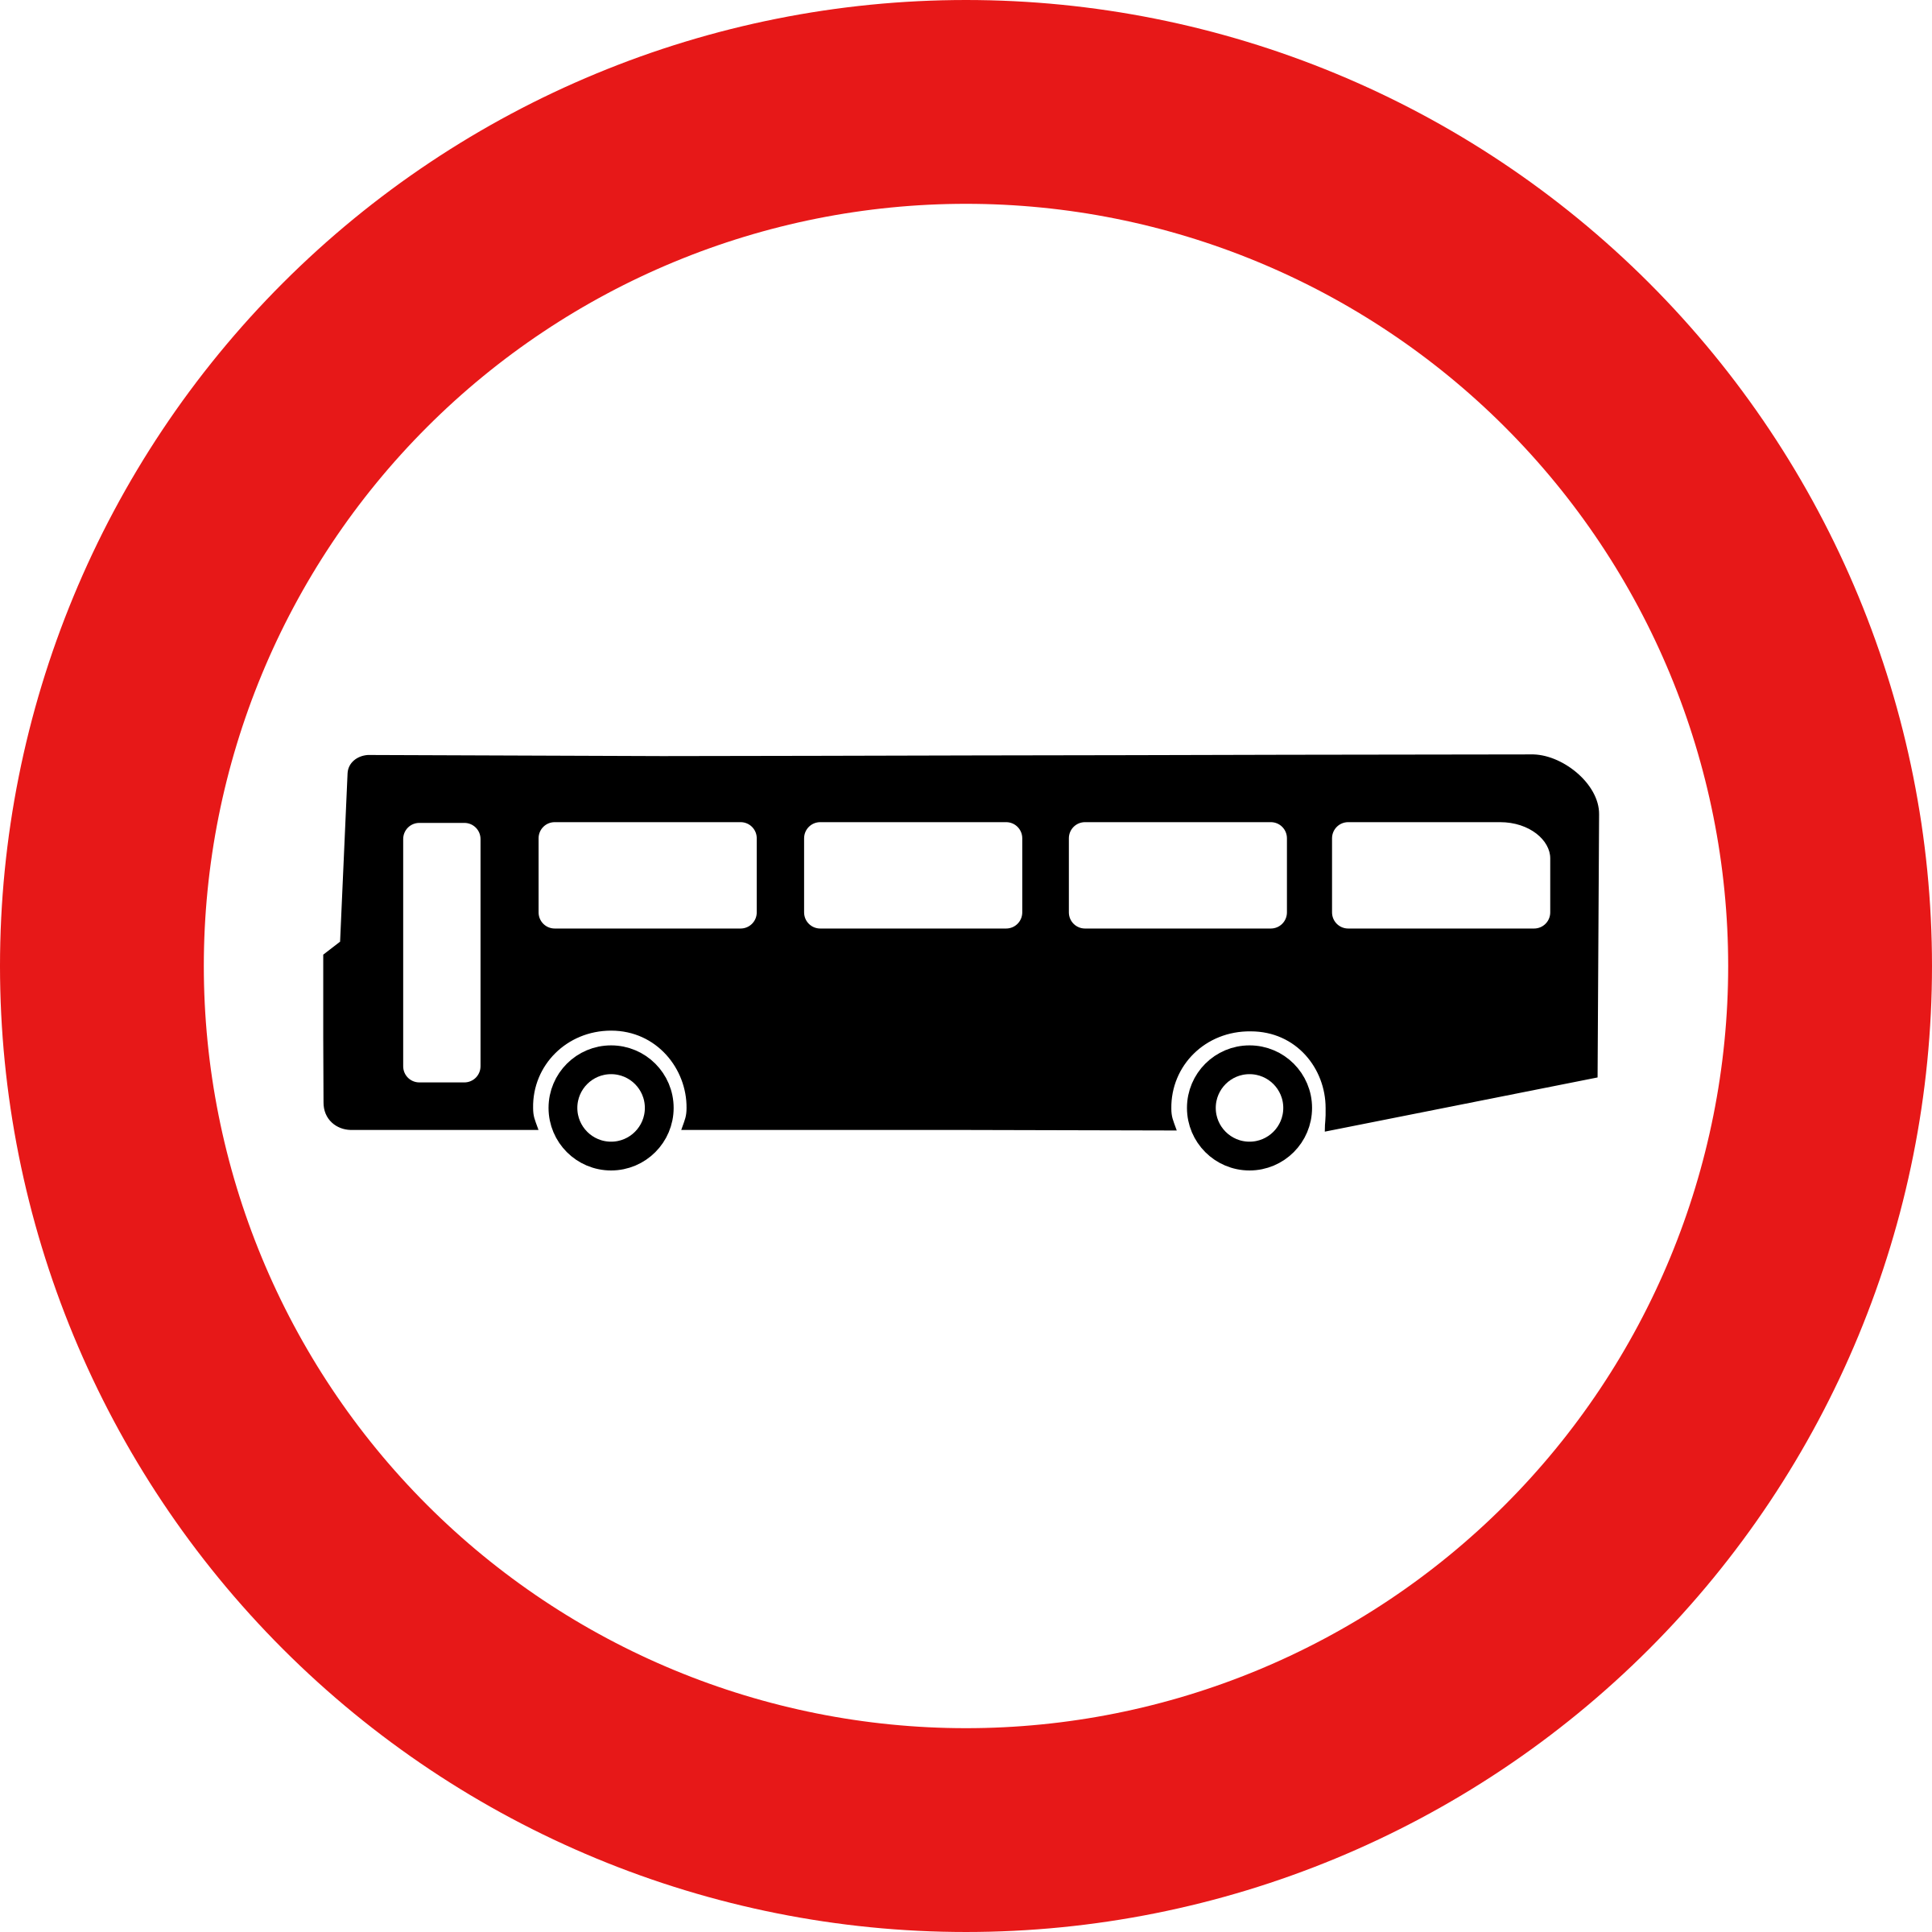 Roadsign no buses by Simarilius